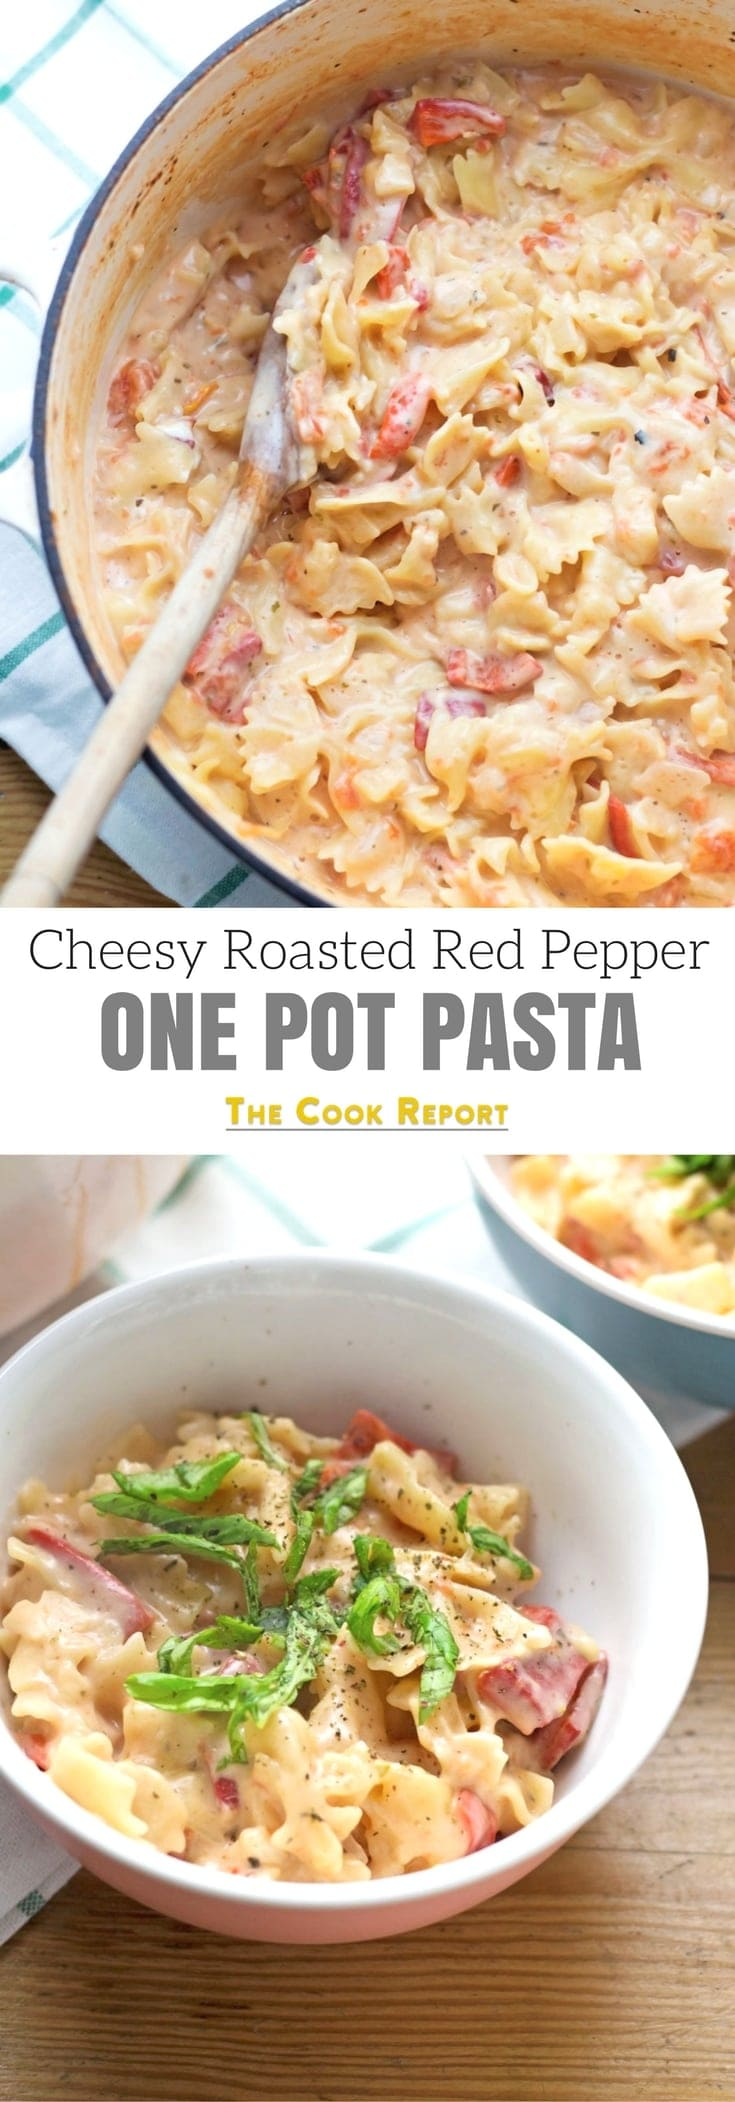 This Cheesy Roasted Red Pepper One Pot Pasta comes together in 20 minutes and is full of comforting cream cheese and the smoky flavour of roasted red peppers.